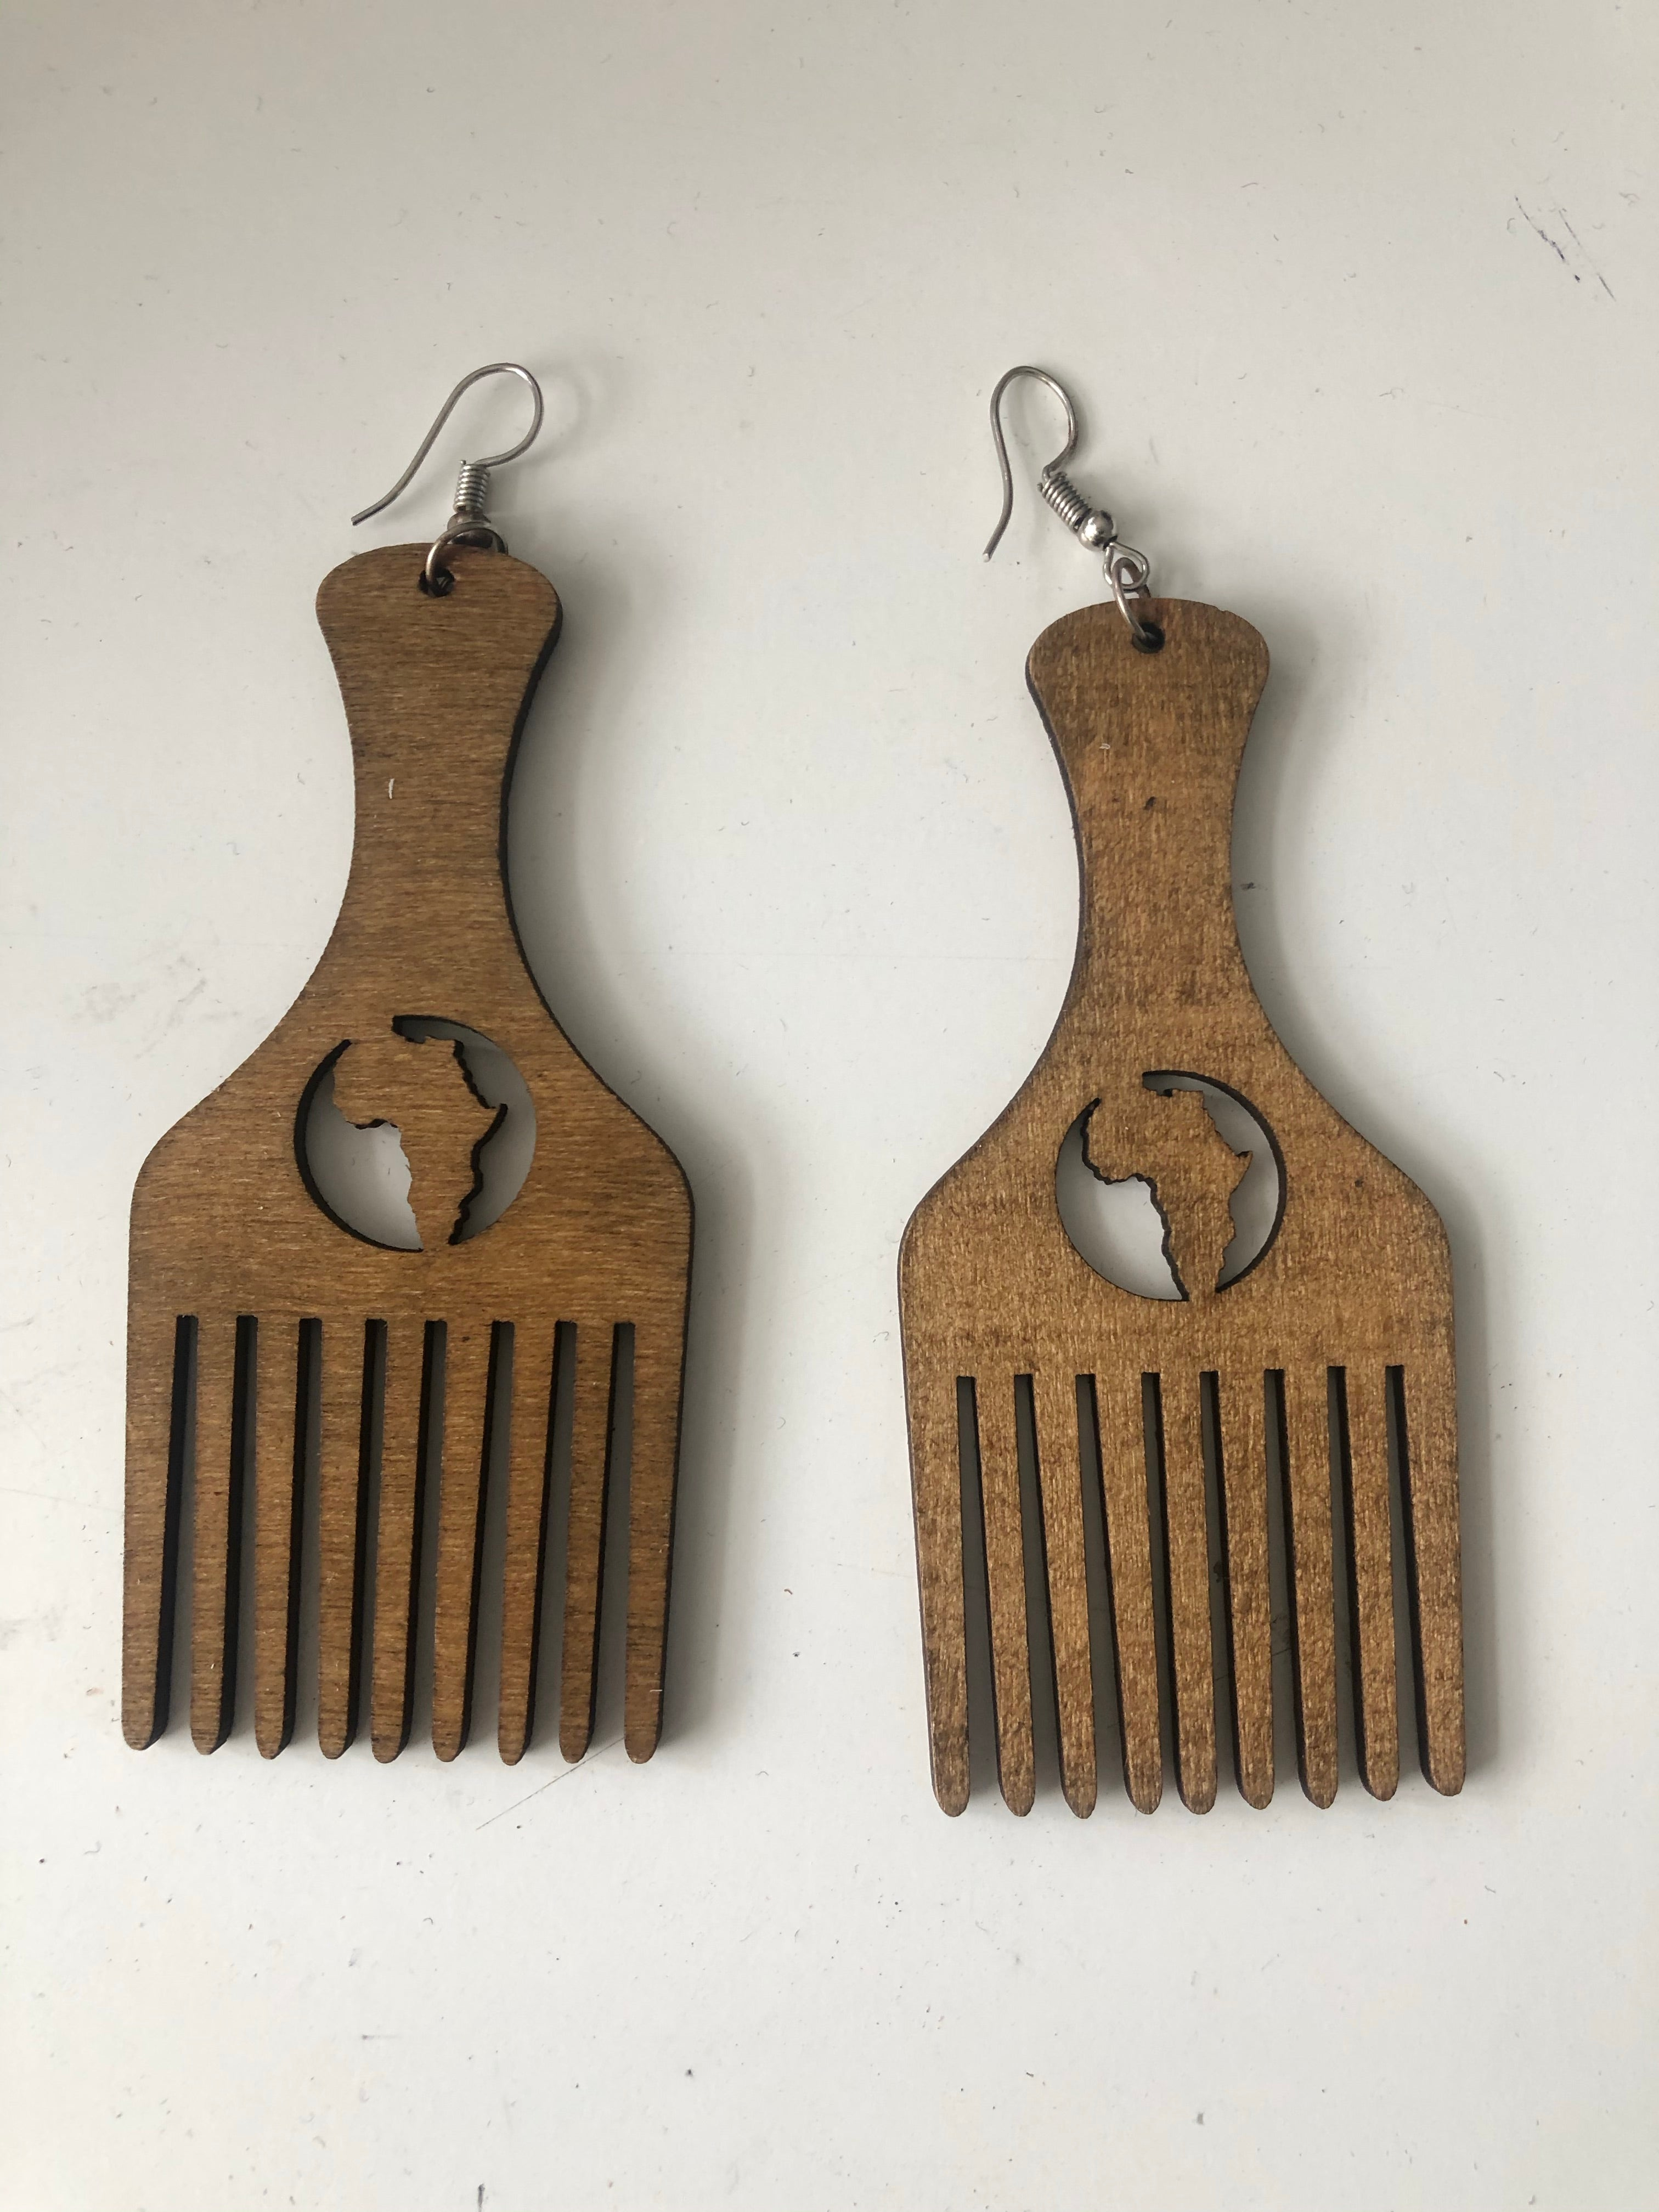 Afro comb earrings 1